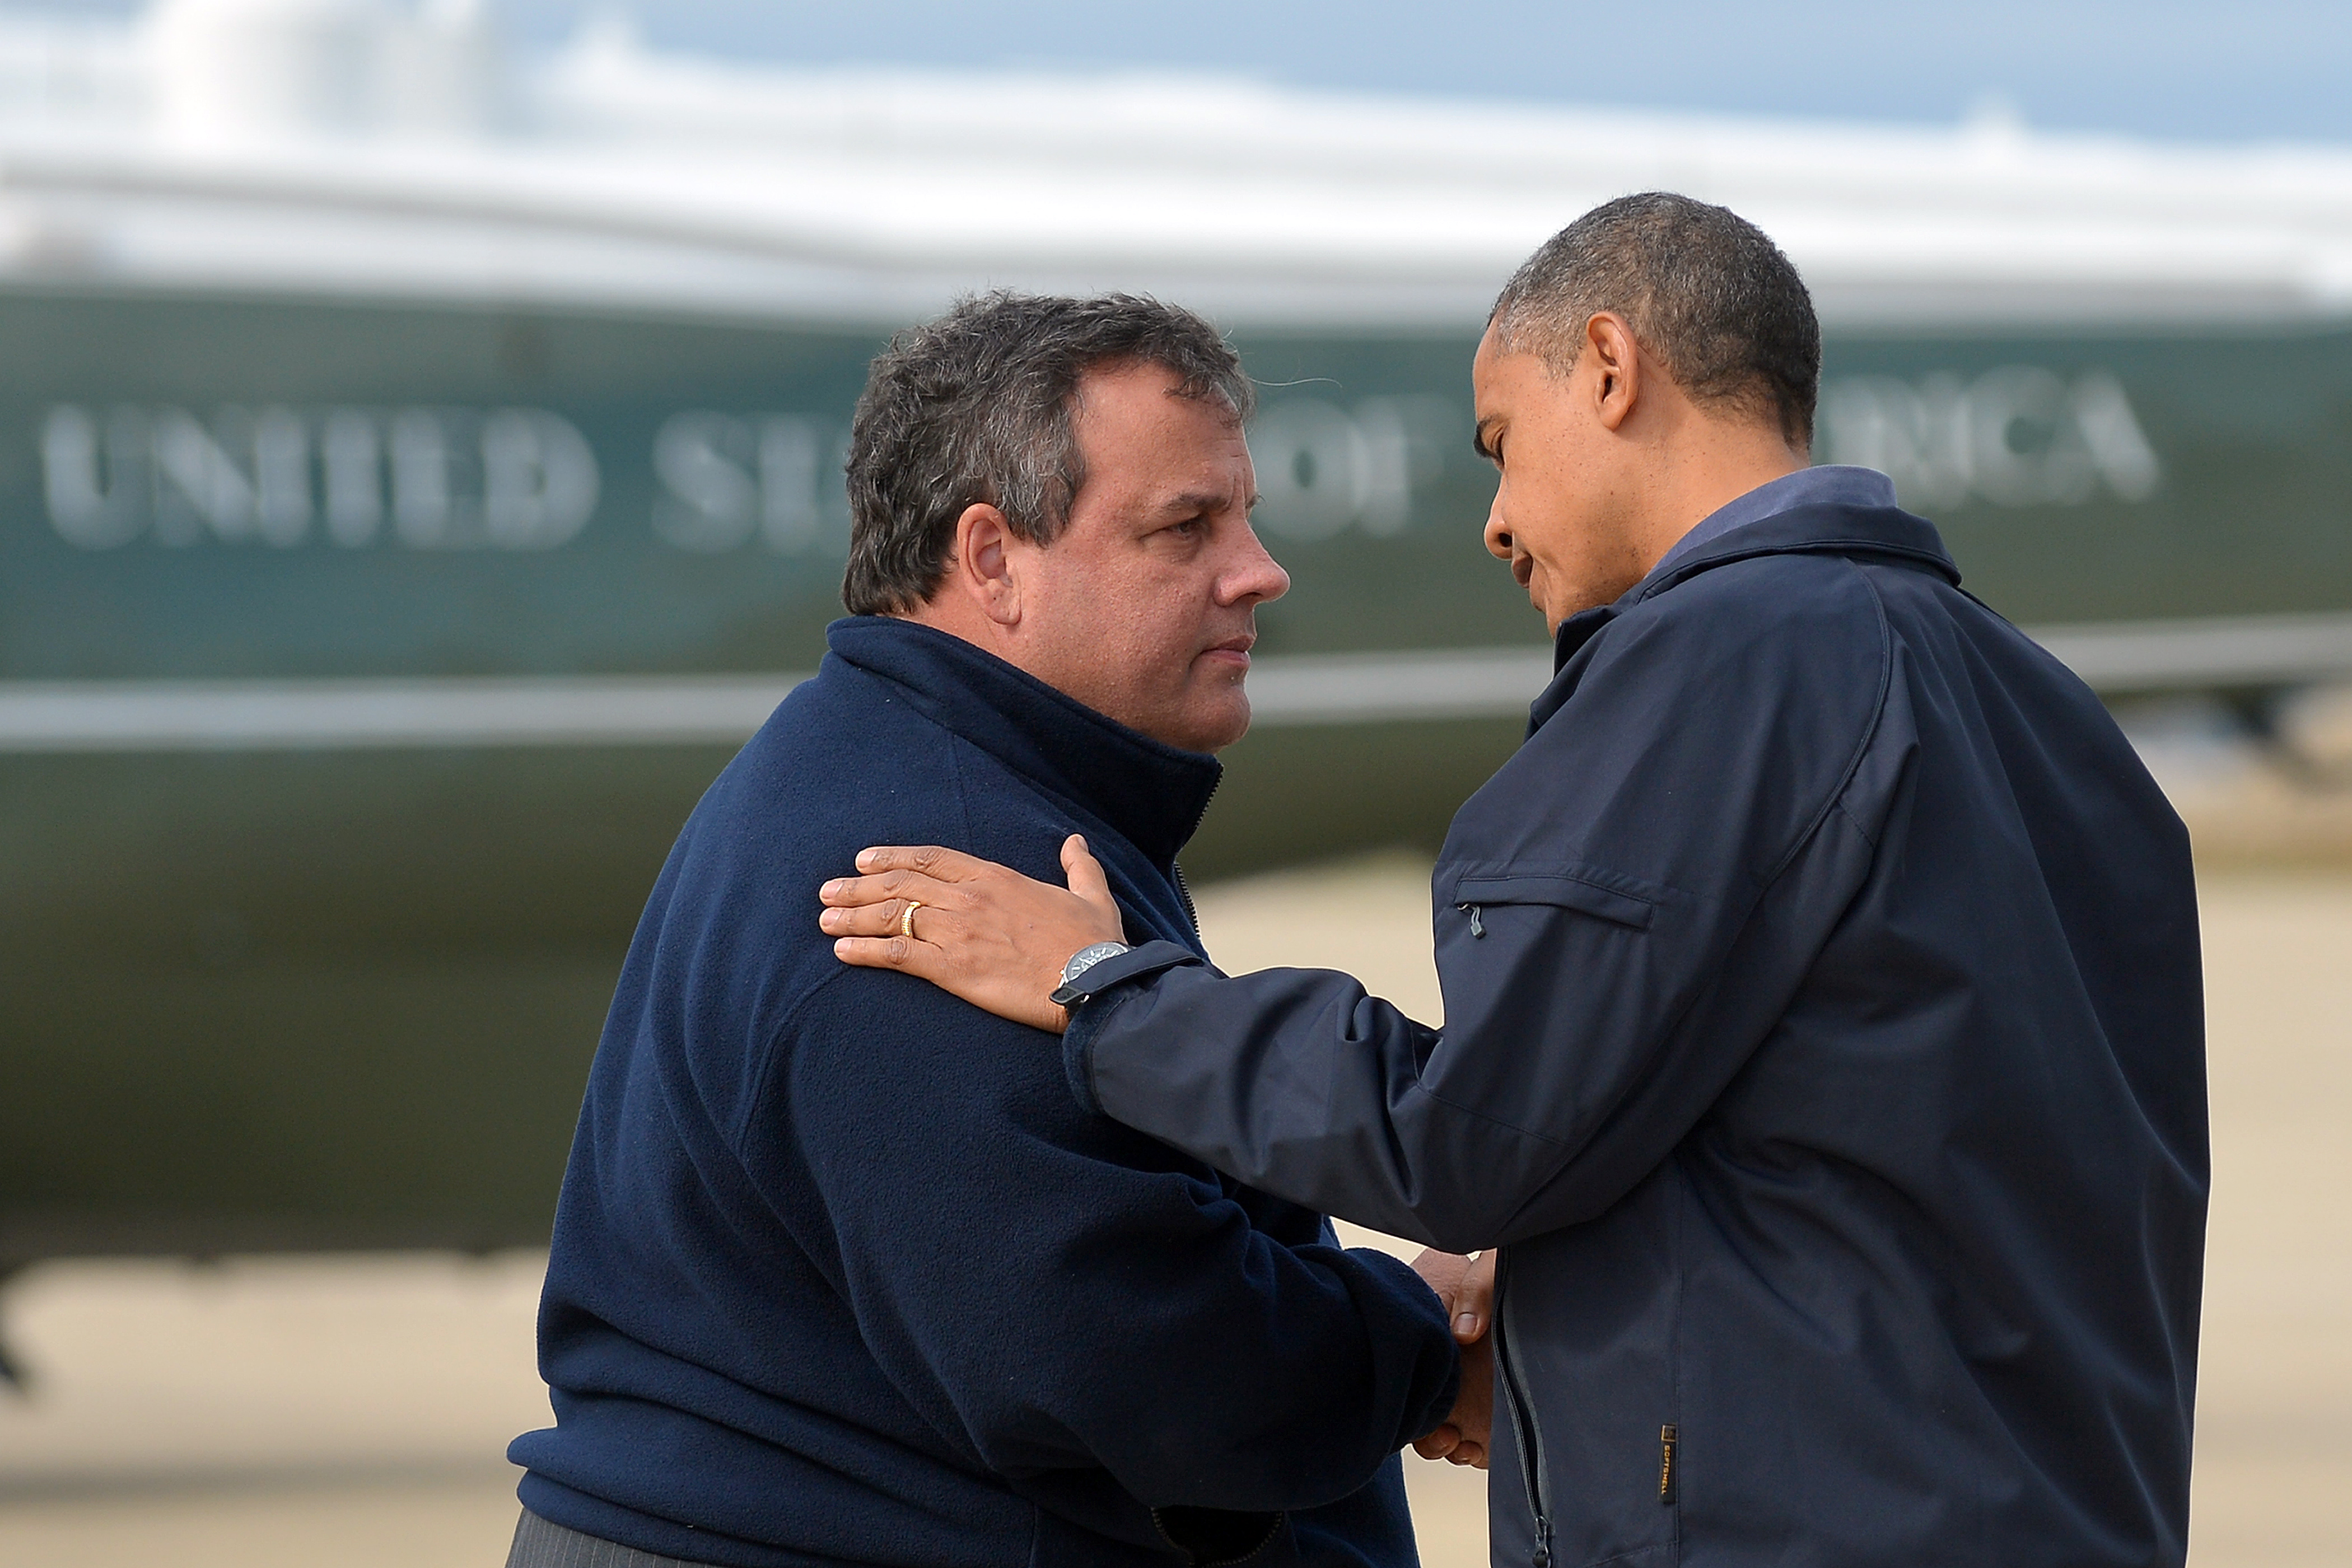 President Barack Obama is greeted by New Jersey Governor Chris Christie upon arriving in Atlantic City, New Jersey, on Oct. 31, 2012 to visit areas hardest hit by the unprecedented cyclone Sandy.